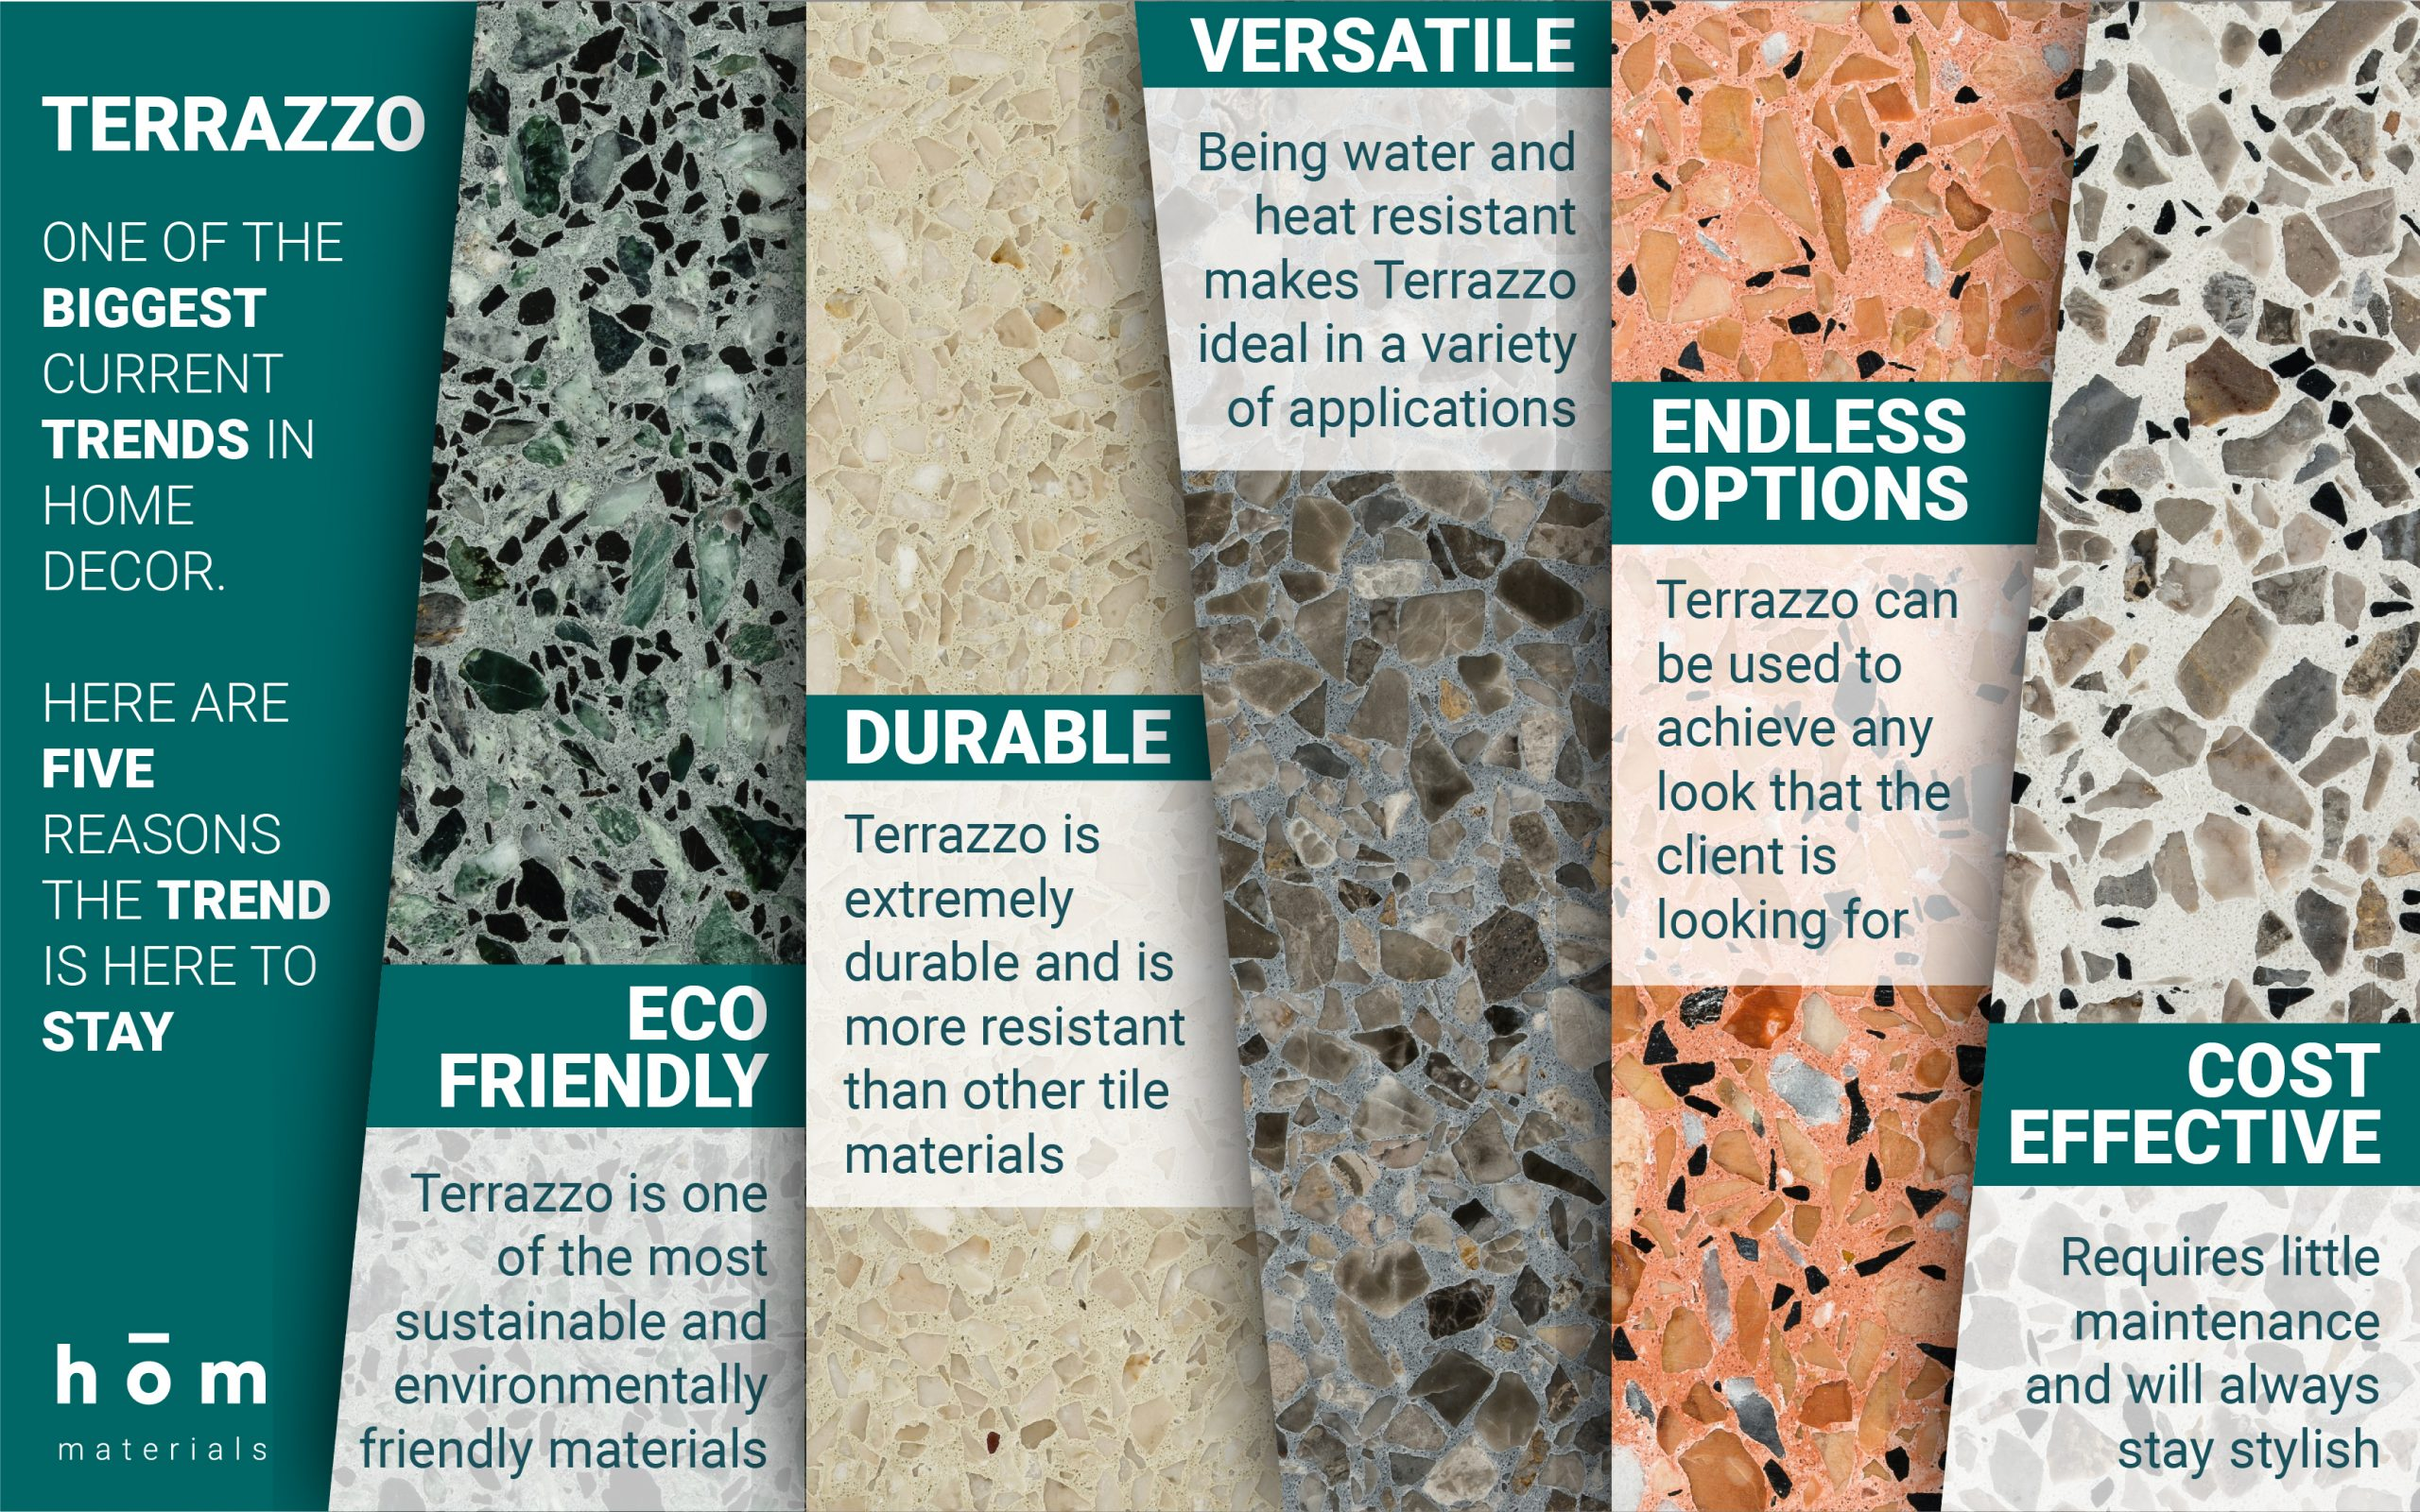 5 reasons the terrazzo trend is here to stay!